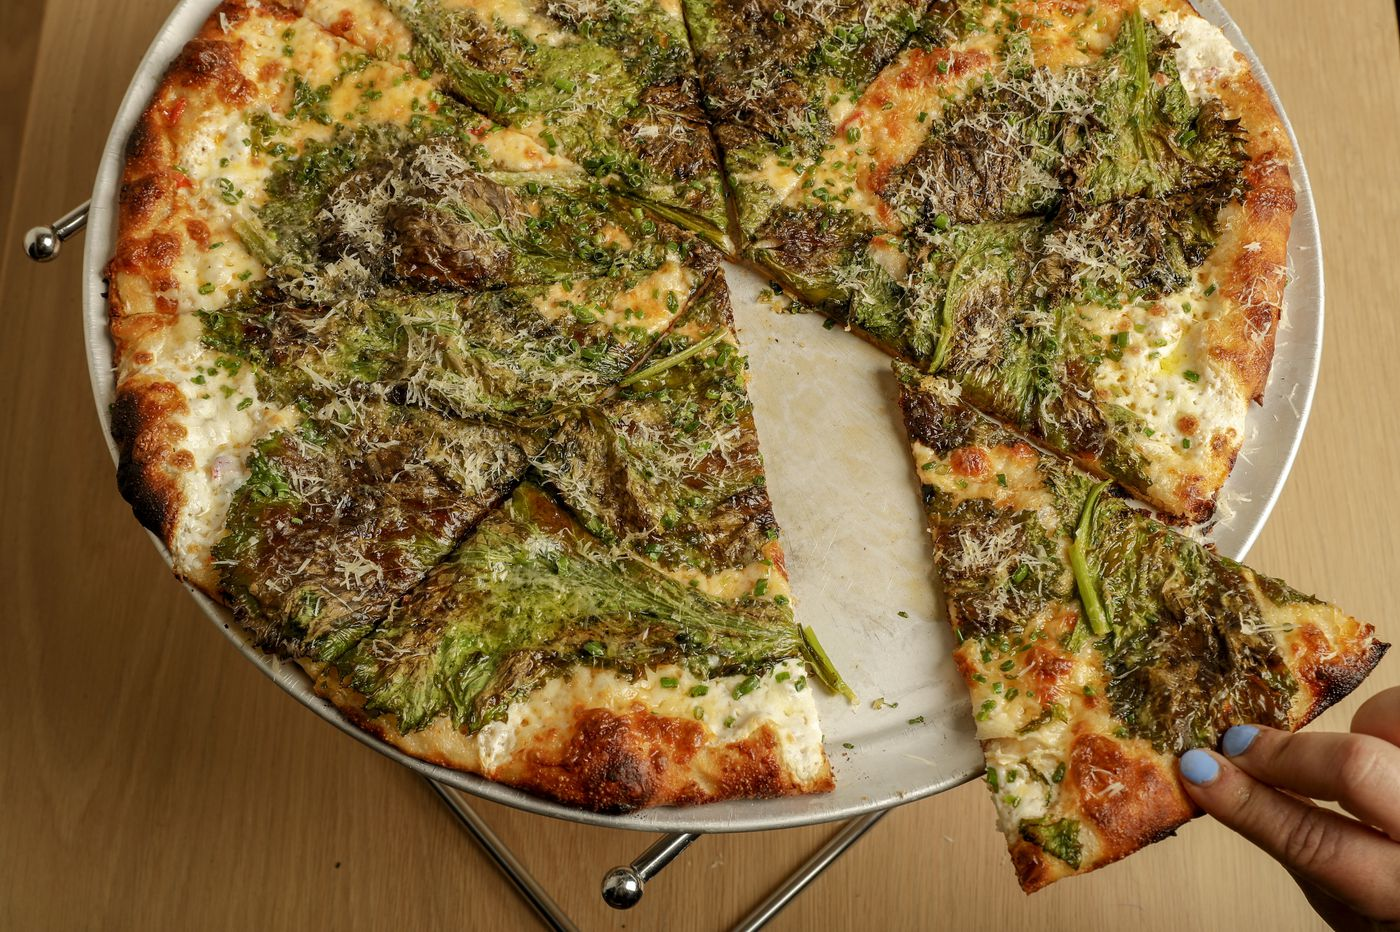 Pizzeria Beddia makes Esquire's list of best new restaurants